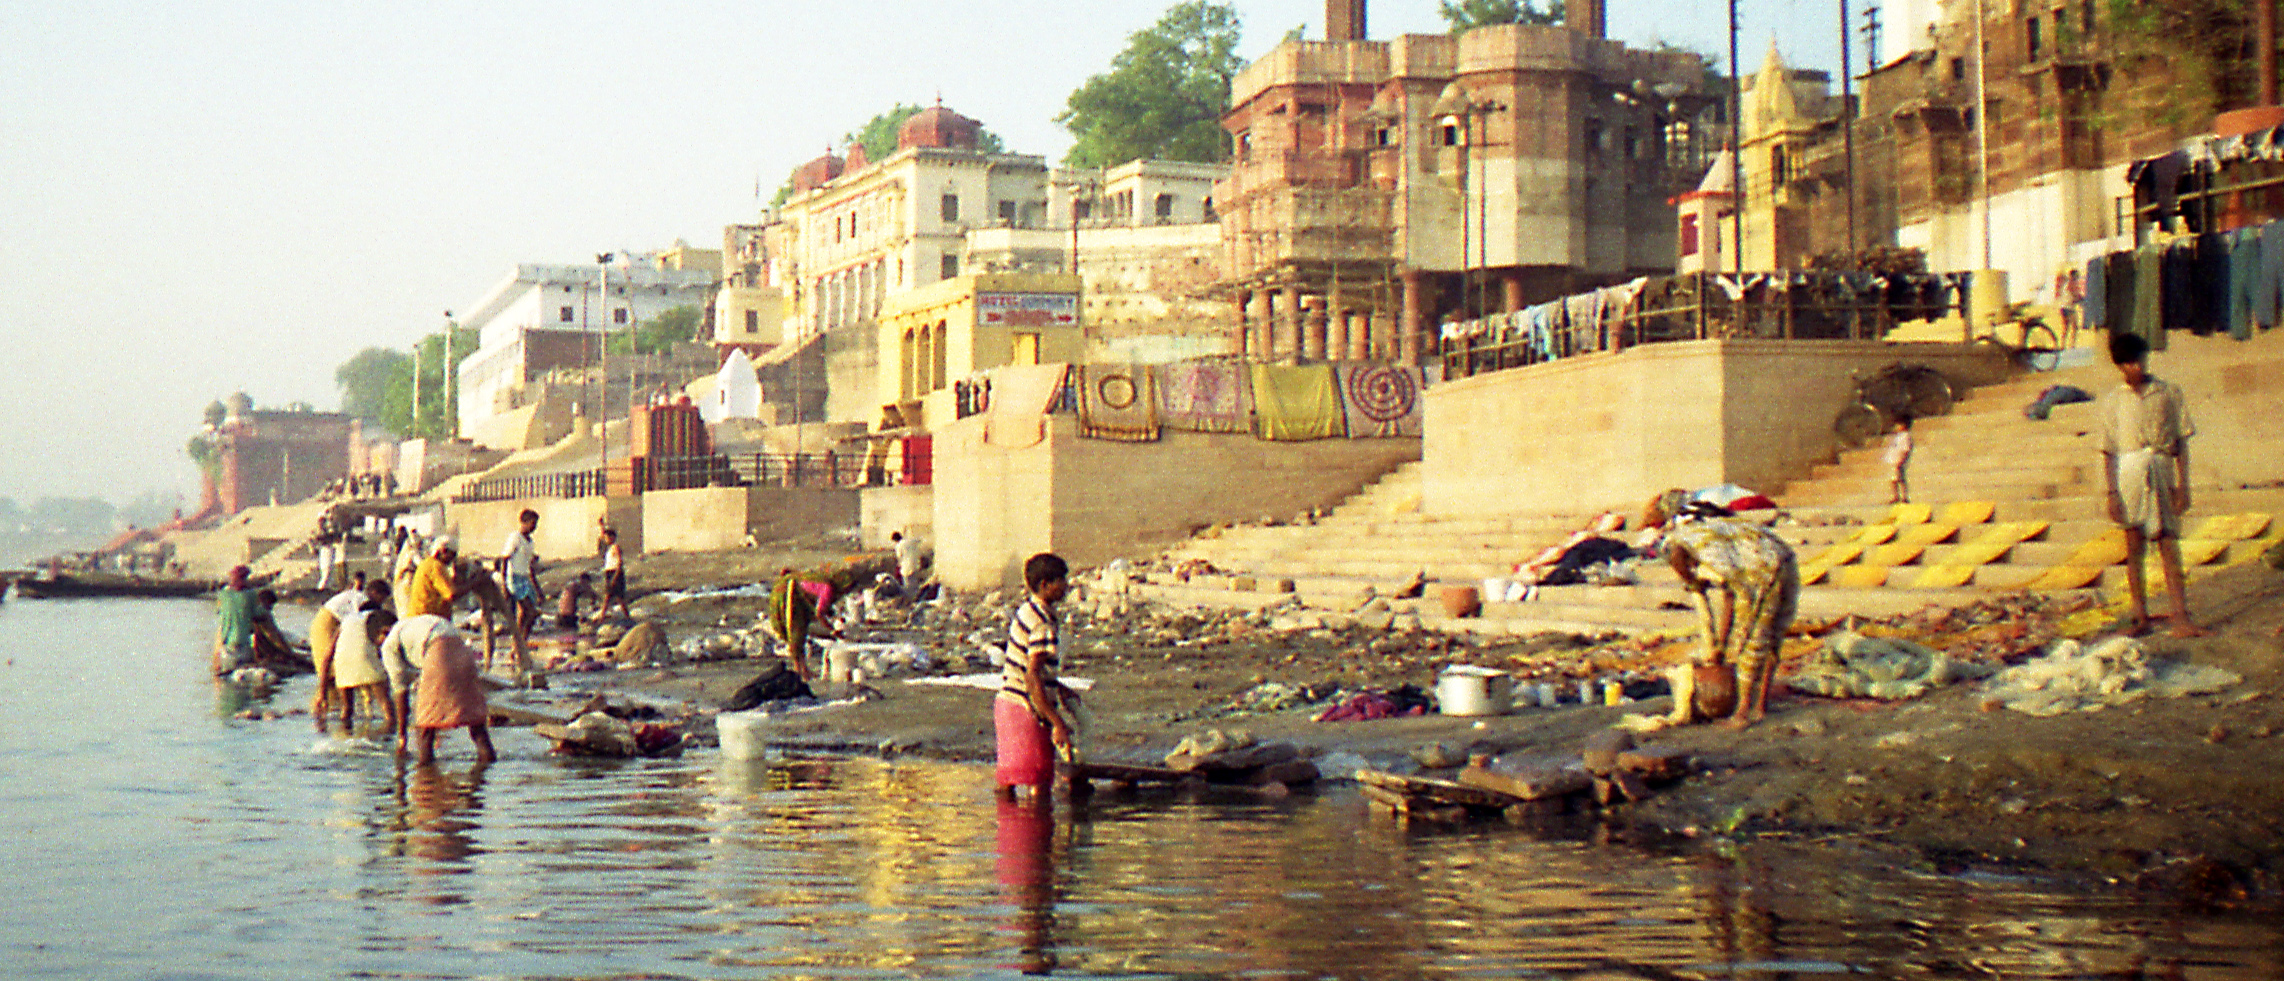 essay on water pollution in india Water pollution in India - Wikipedia ...